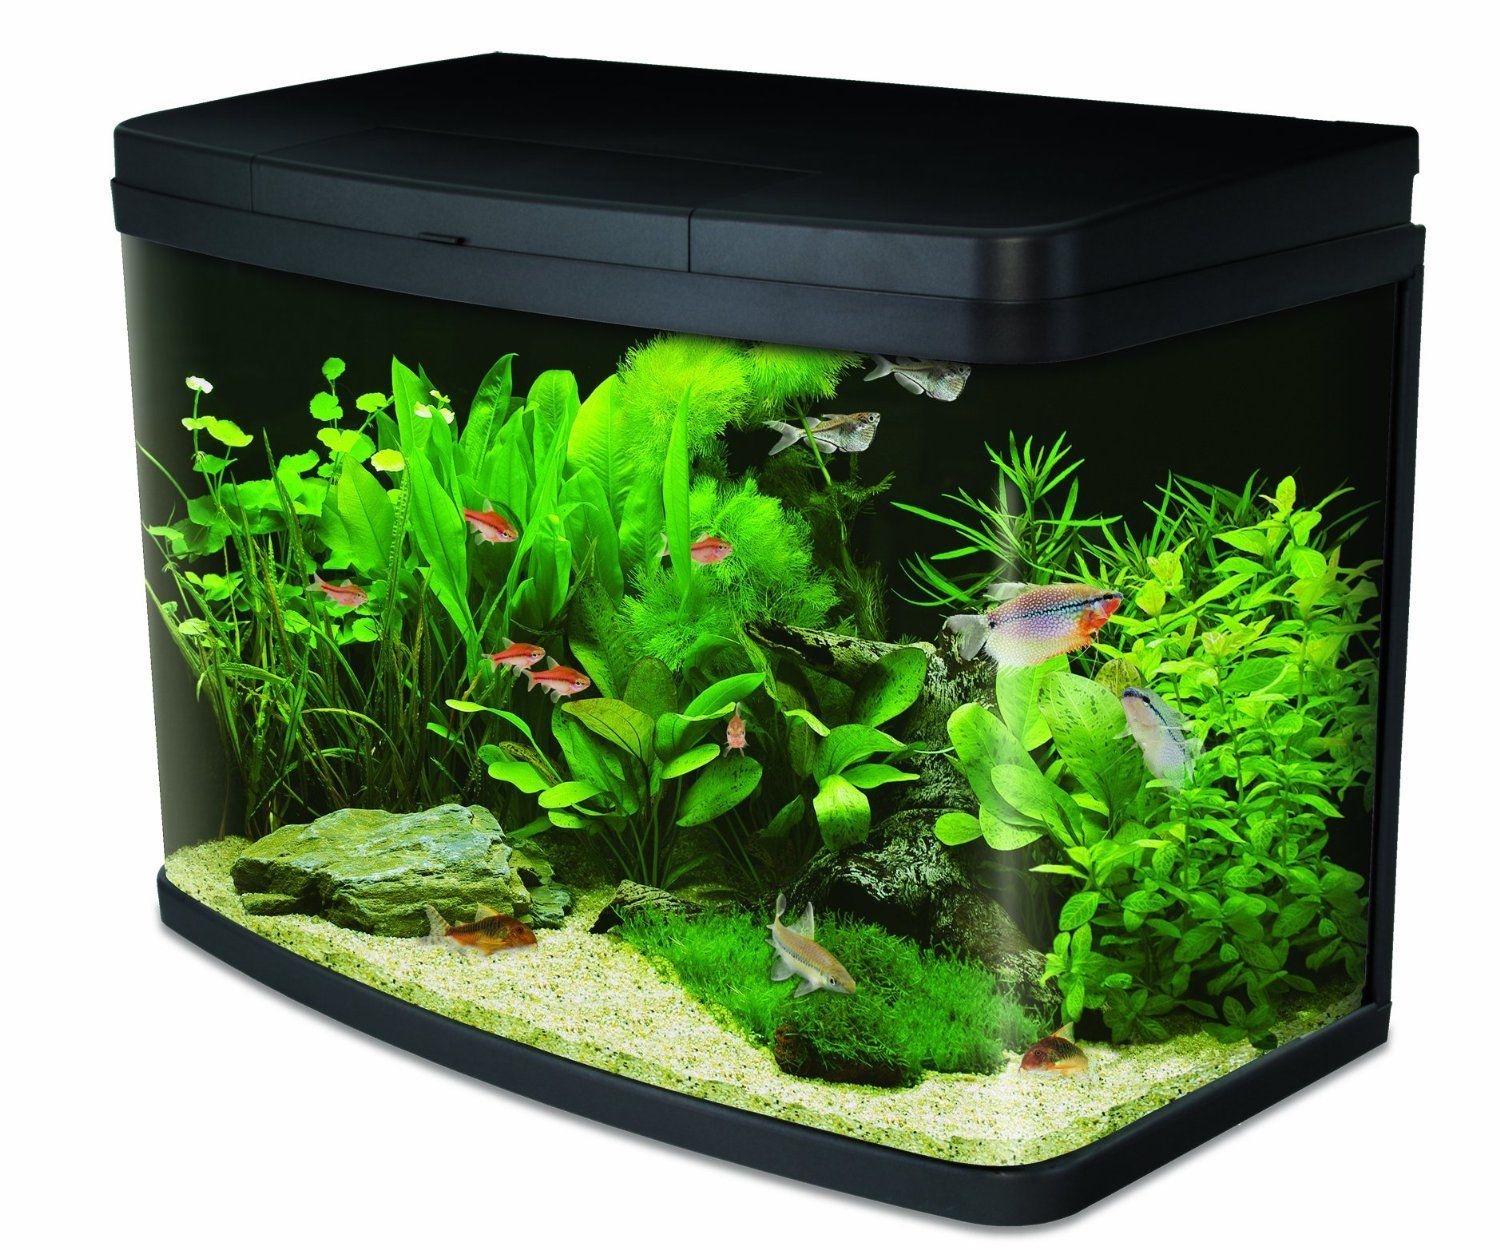 Interpet insight 64 litre aquarium fish tank complete set for Fish tank aquarium